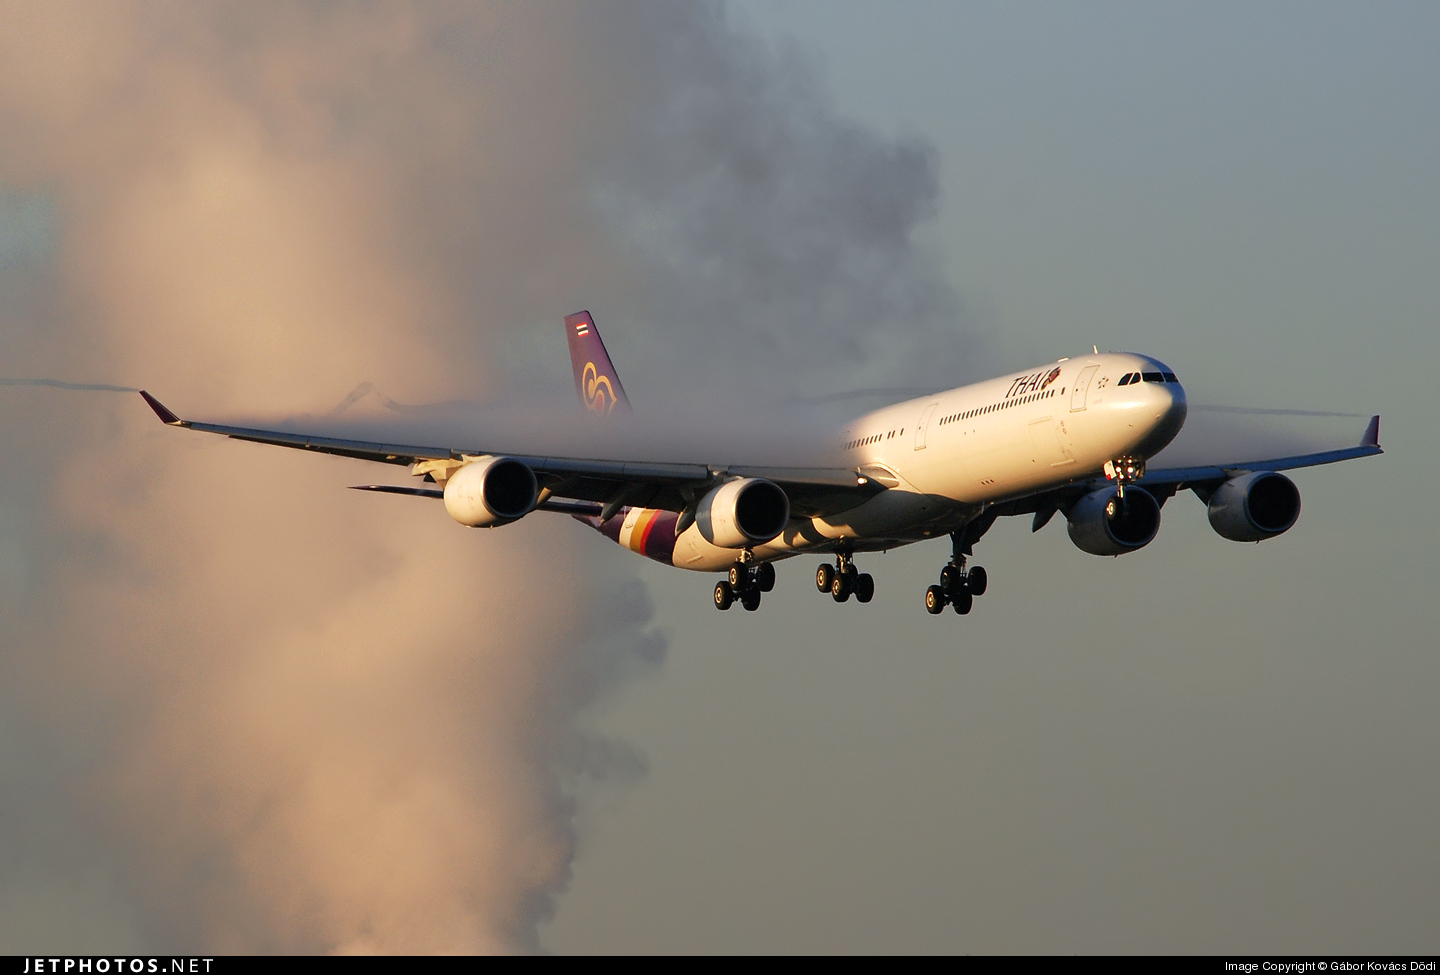 Photo of HS-TNE Airbus A340-642 by Gábor Kovács Dödi